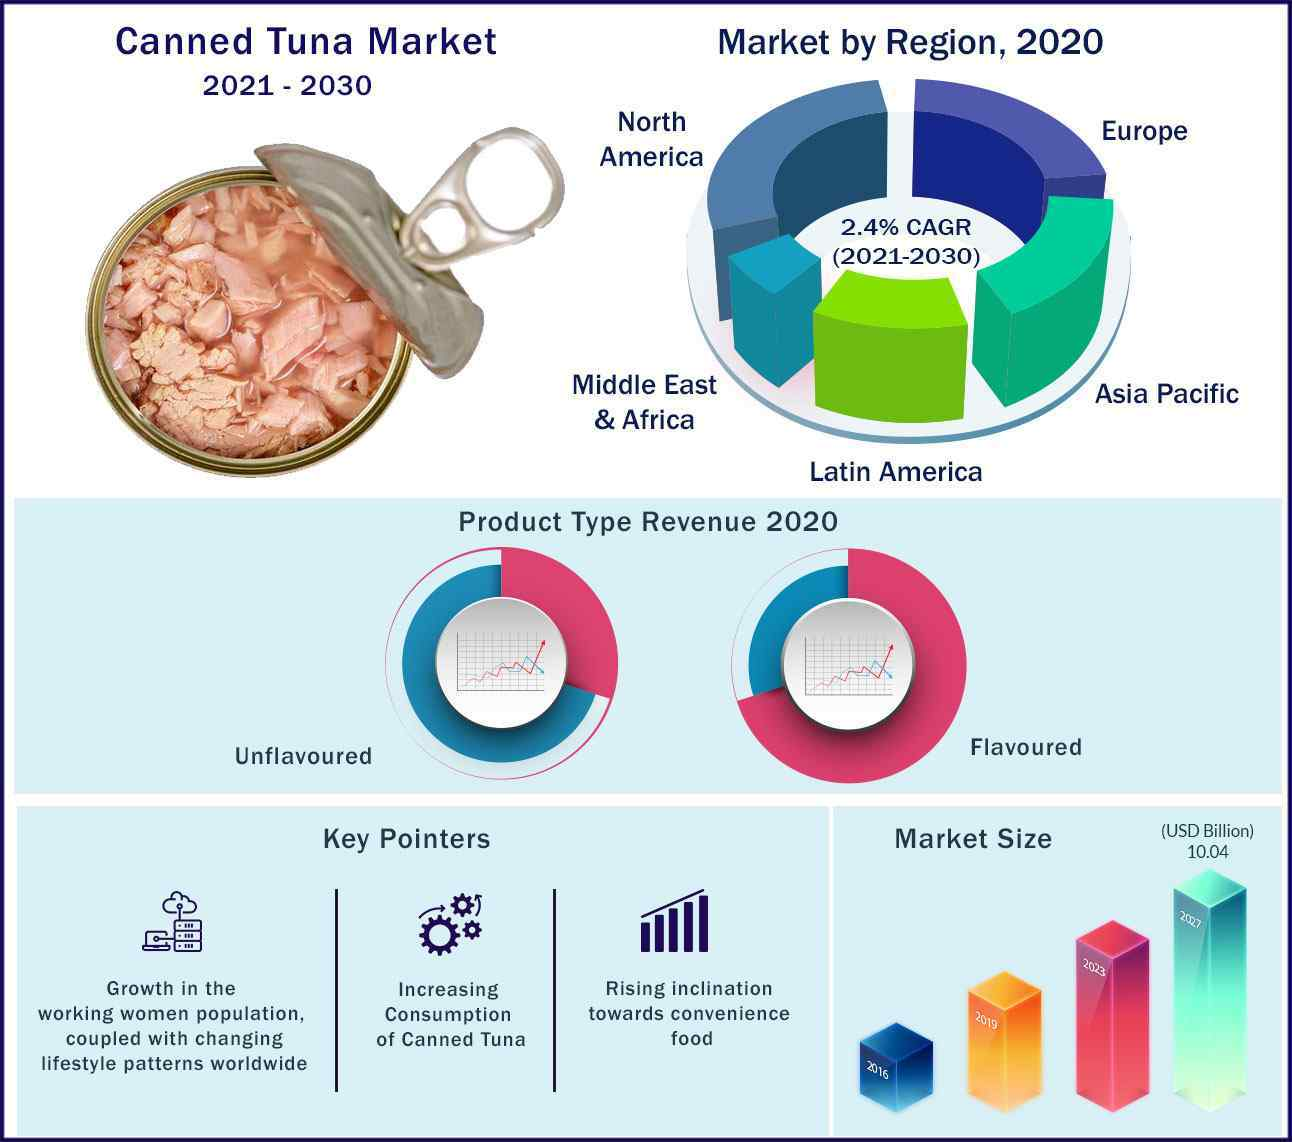 Global Canned Tuna Market 2021-2030